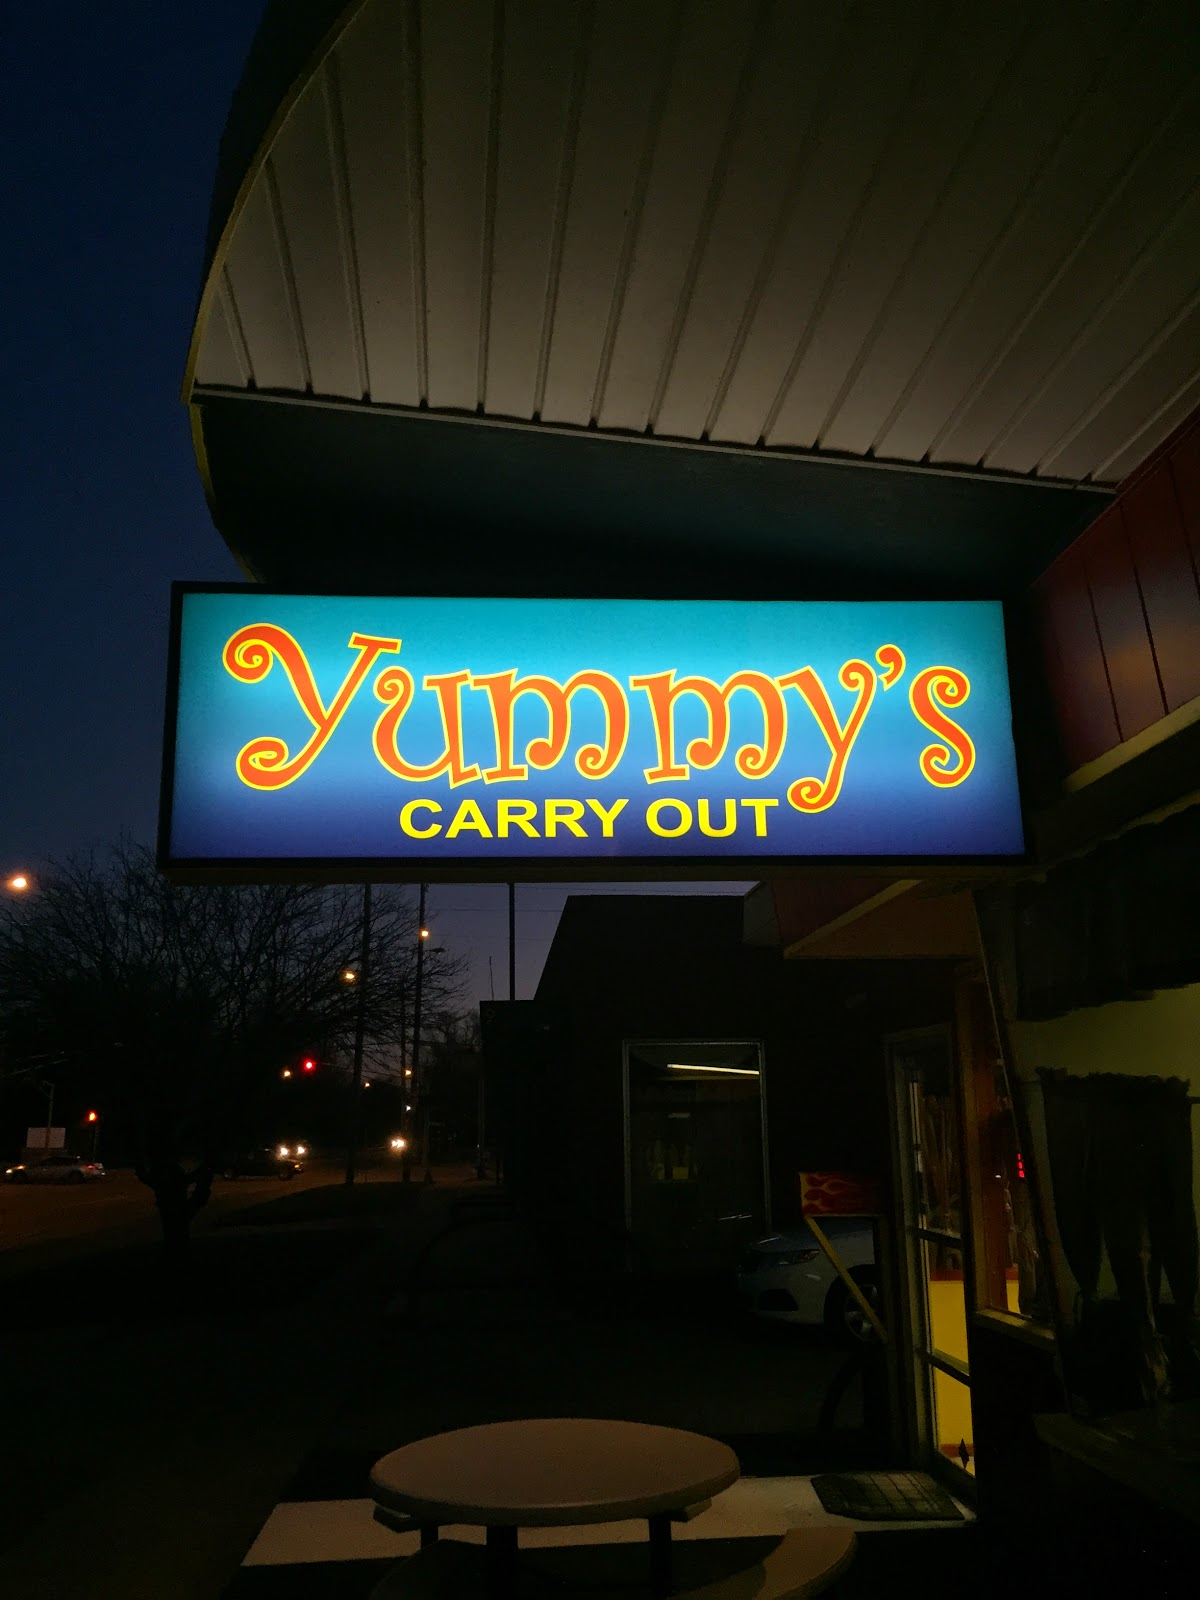 Yummy's Carryout